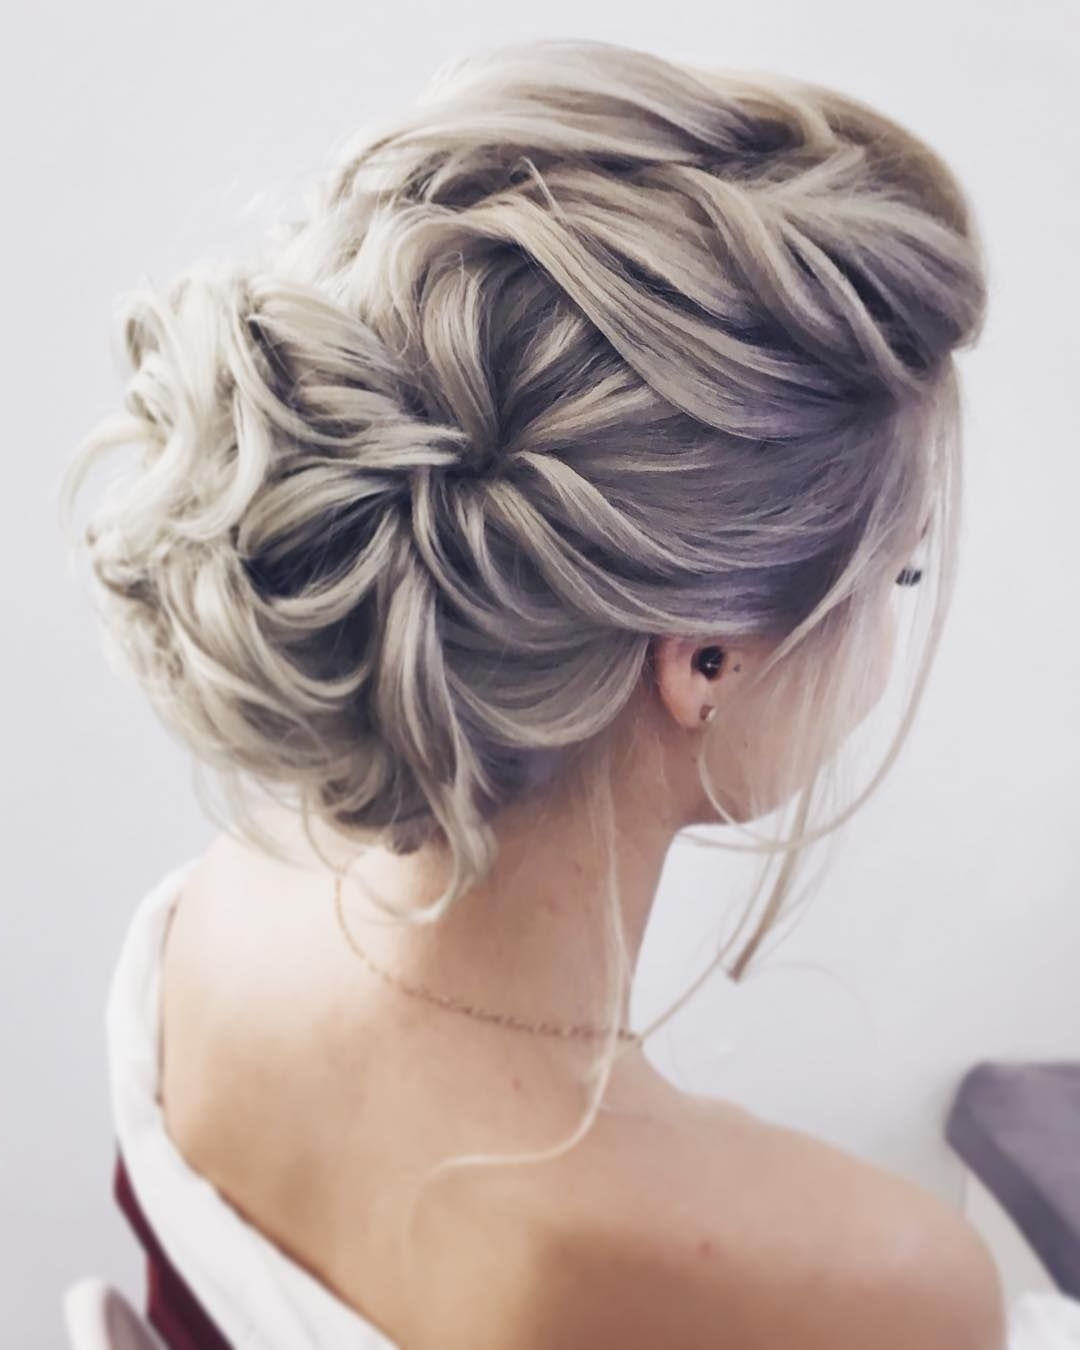 Casual Hairstyles Forngs Medium Hairng Hairdos Long Down Bridesmaids Within Current Wedding Updos For Long Hair Bridesmaids (View 2 of 15)